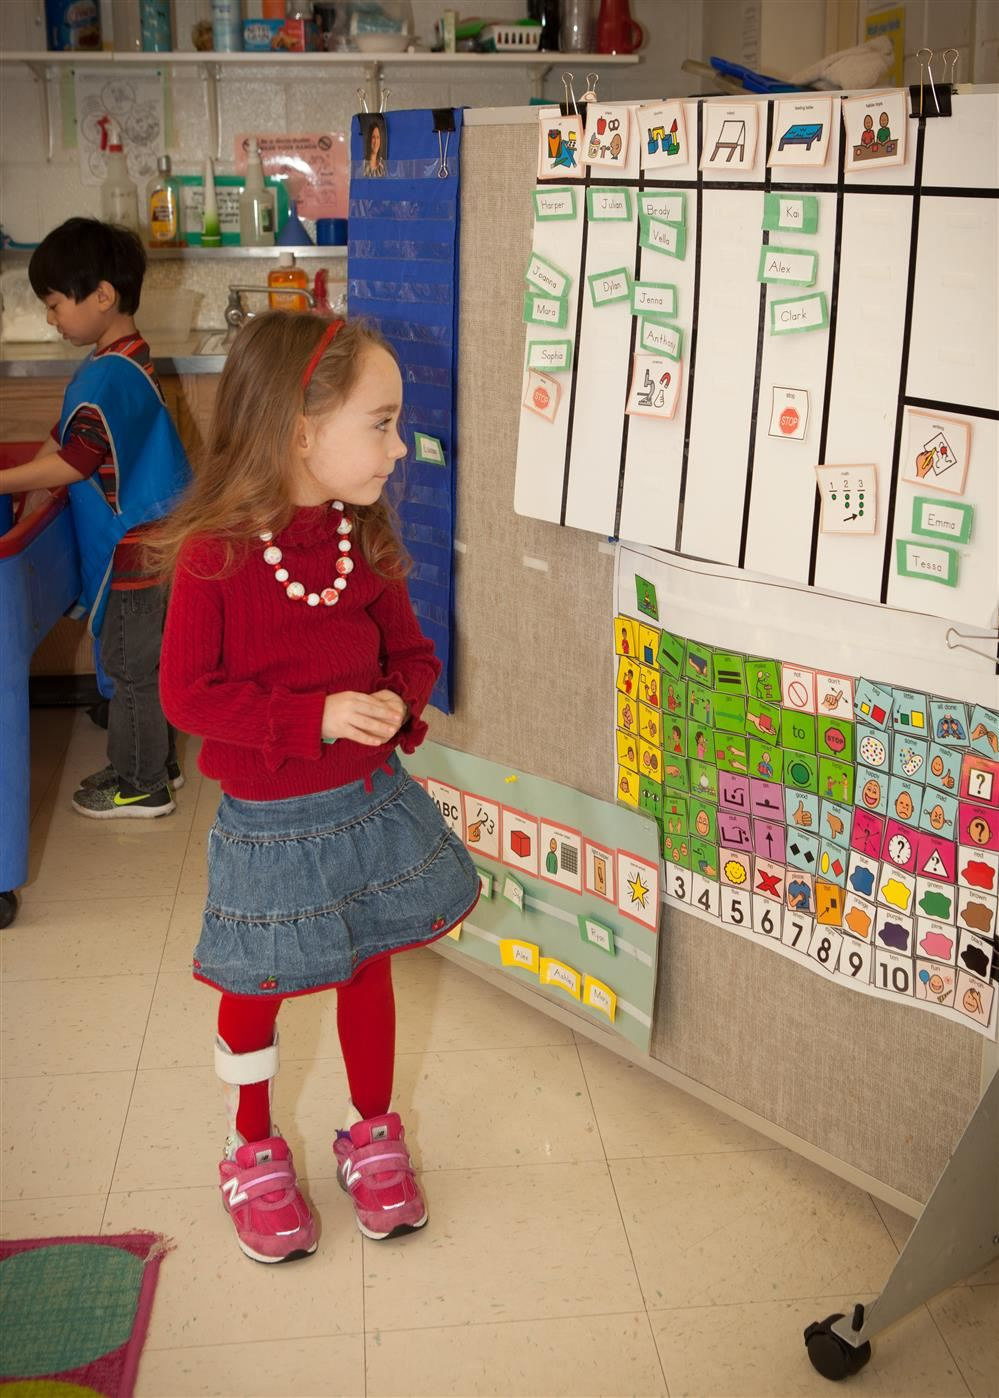 little girl looking at board